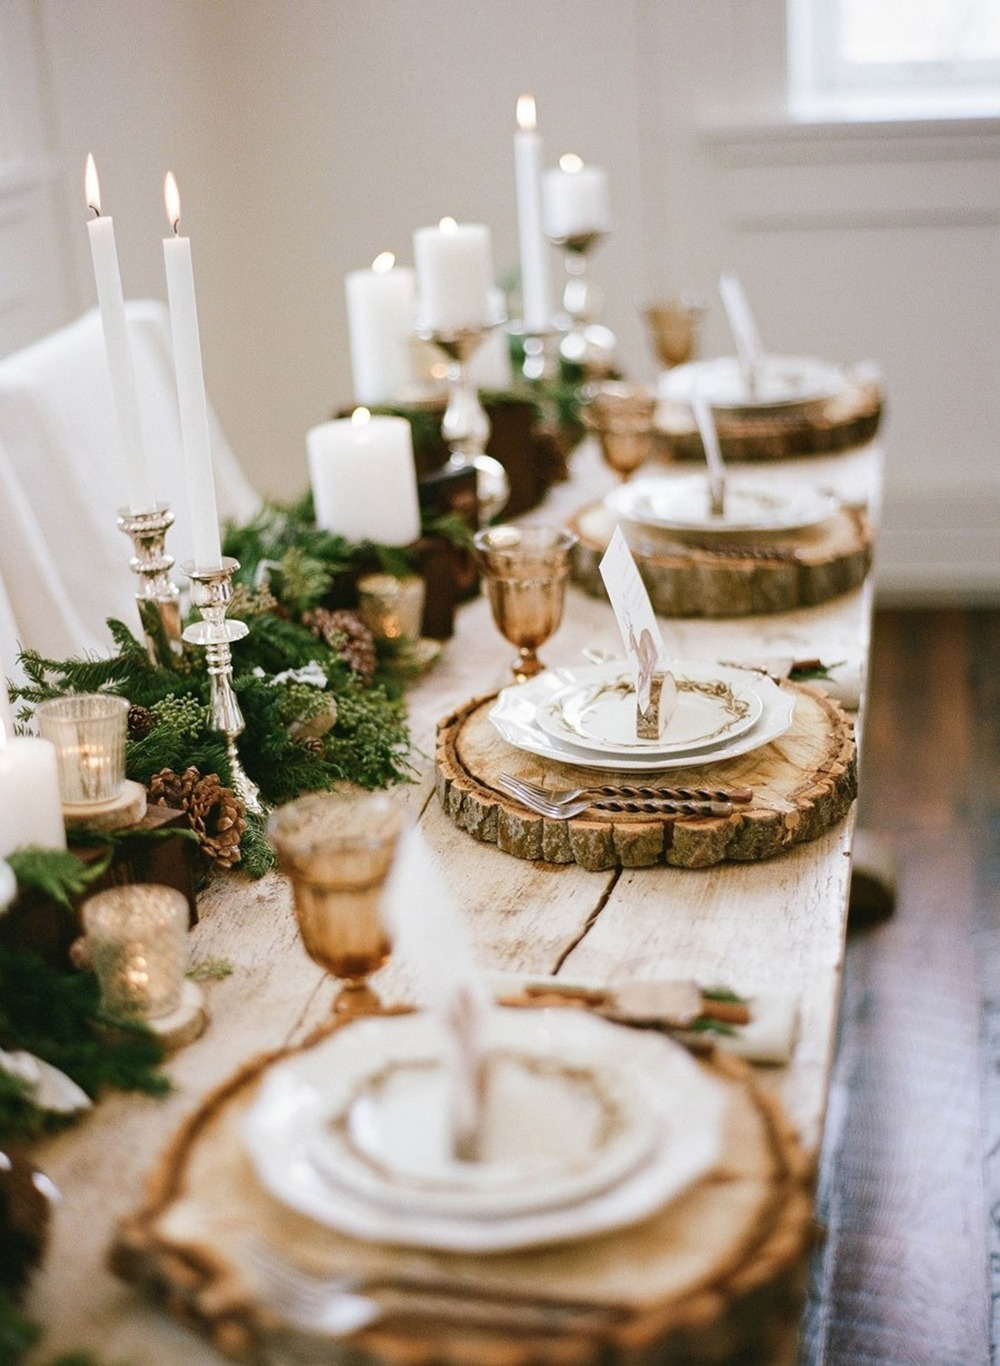 26 ideas on how to transform your thanksgiving table - Deco de noel naturelle ...